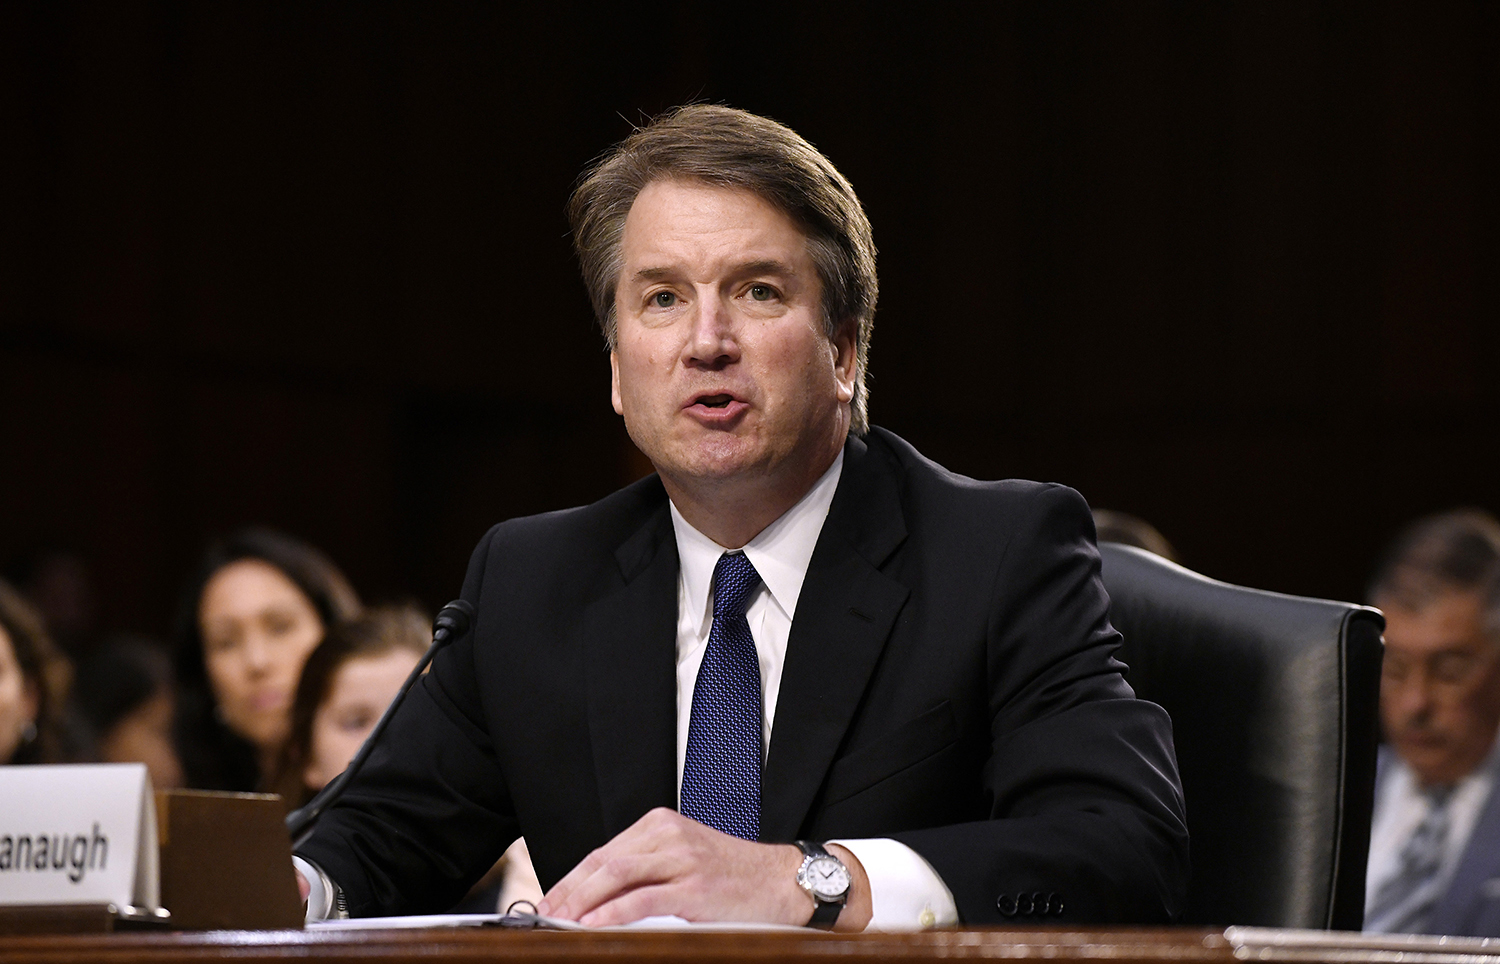 Supreme Court nominee Brett Kavanaugh testifies at his confirmation hearing in the Senate Judiciary Committee on Capitol Hill Sept. 4, 2018 in Washington, D.C. (Olivier Douliery/Abaca Press/TNS)